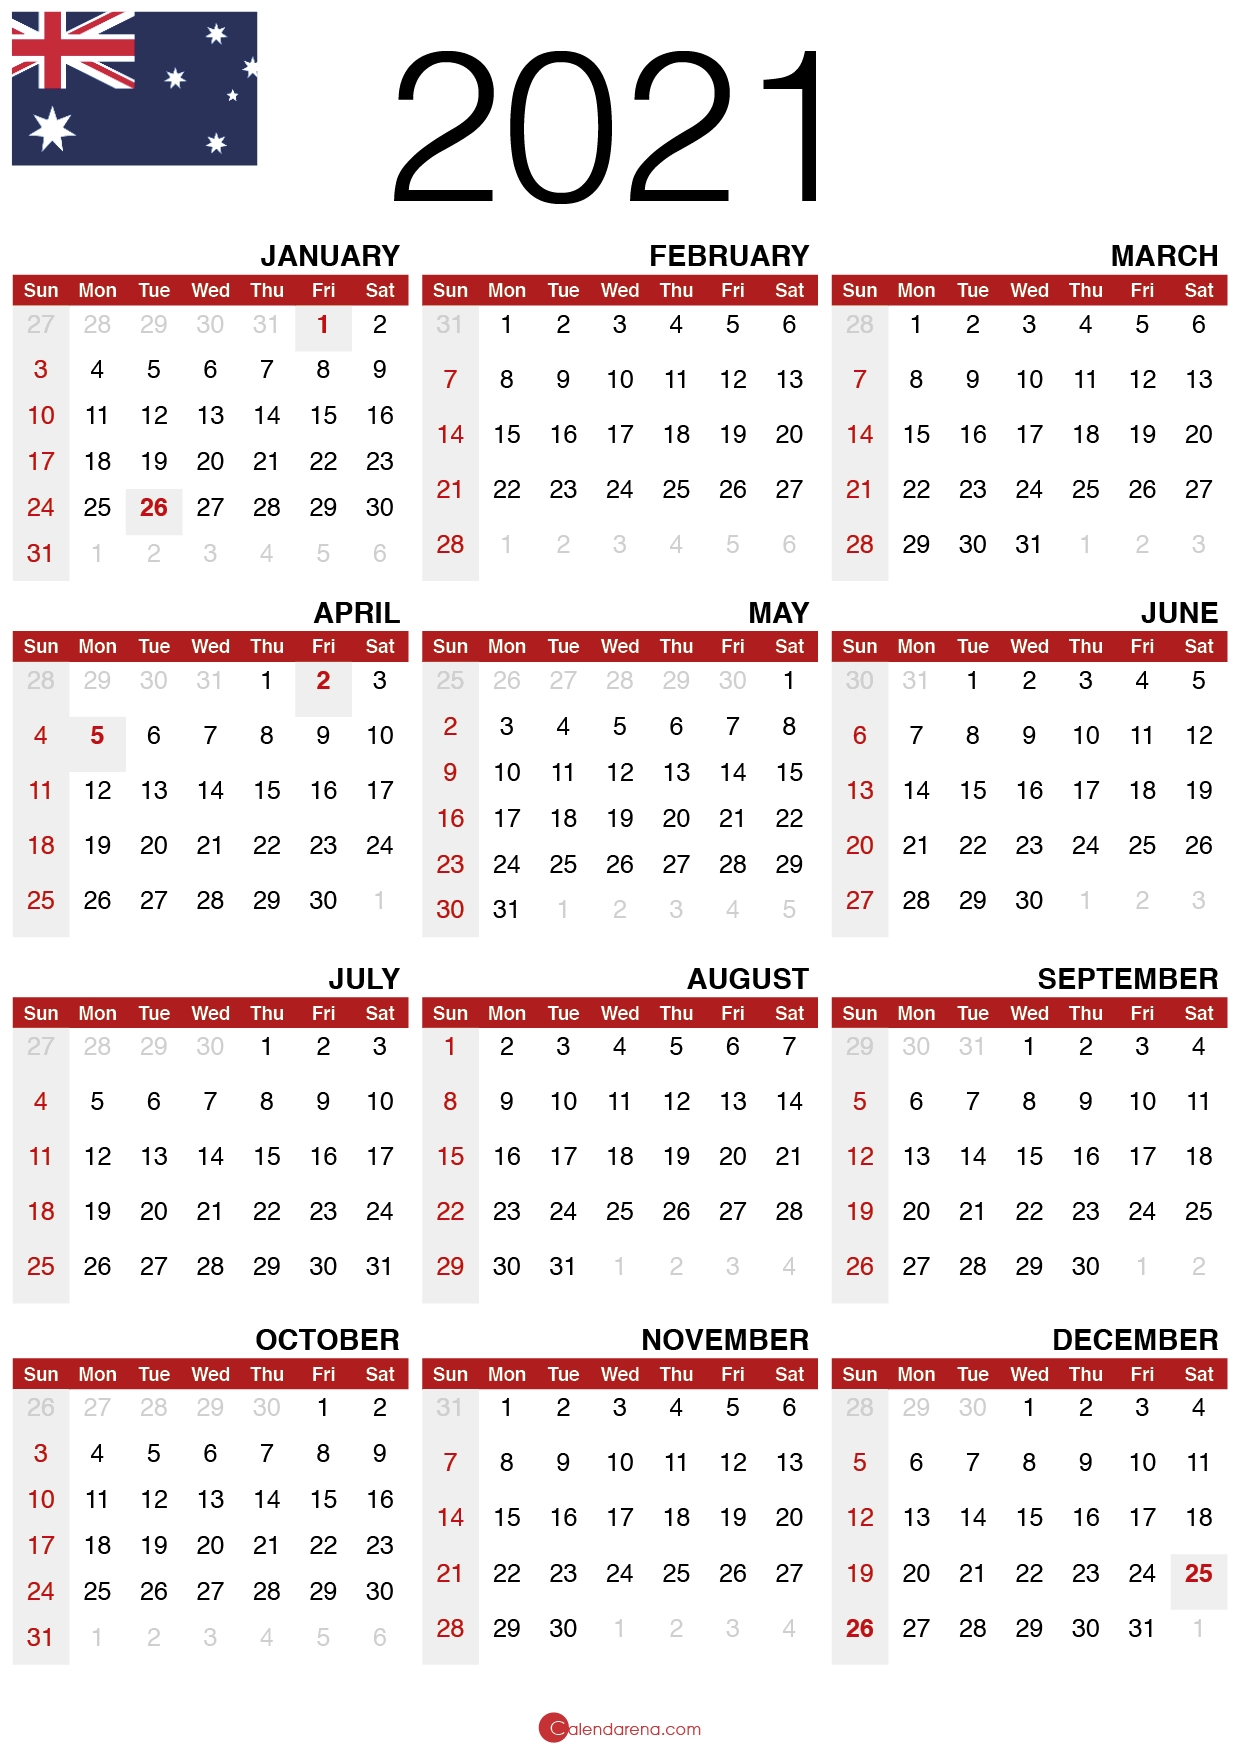 Download Free 2021 Calendar Australia 🇦🇺 intended for 2021 Australia Calendar With Holidays Photo